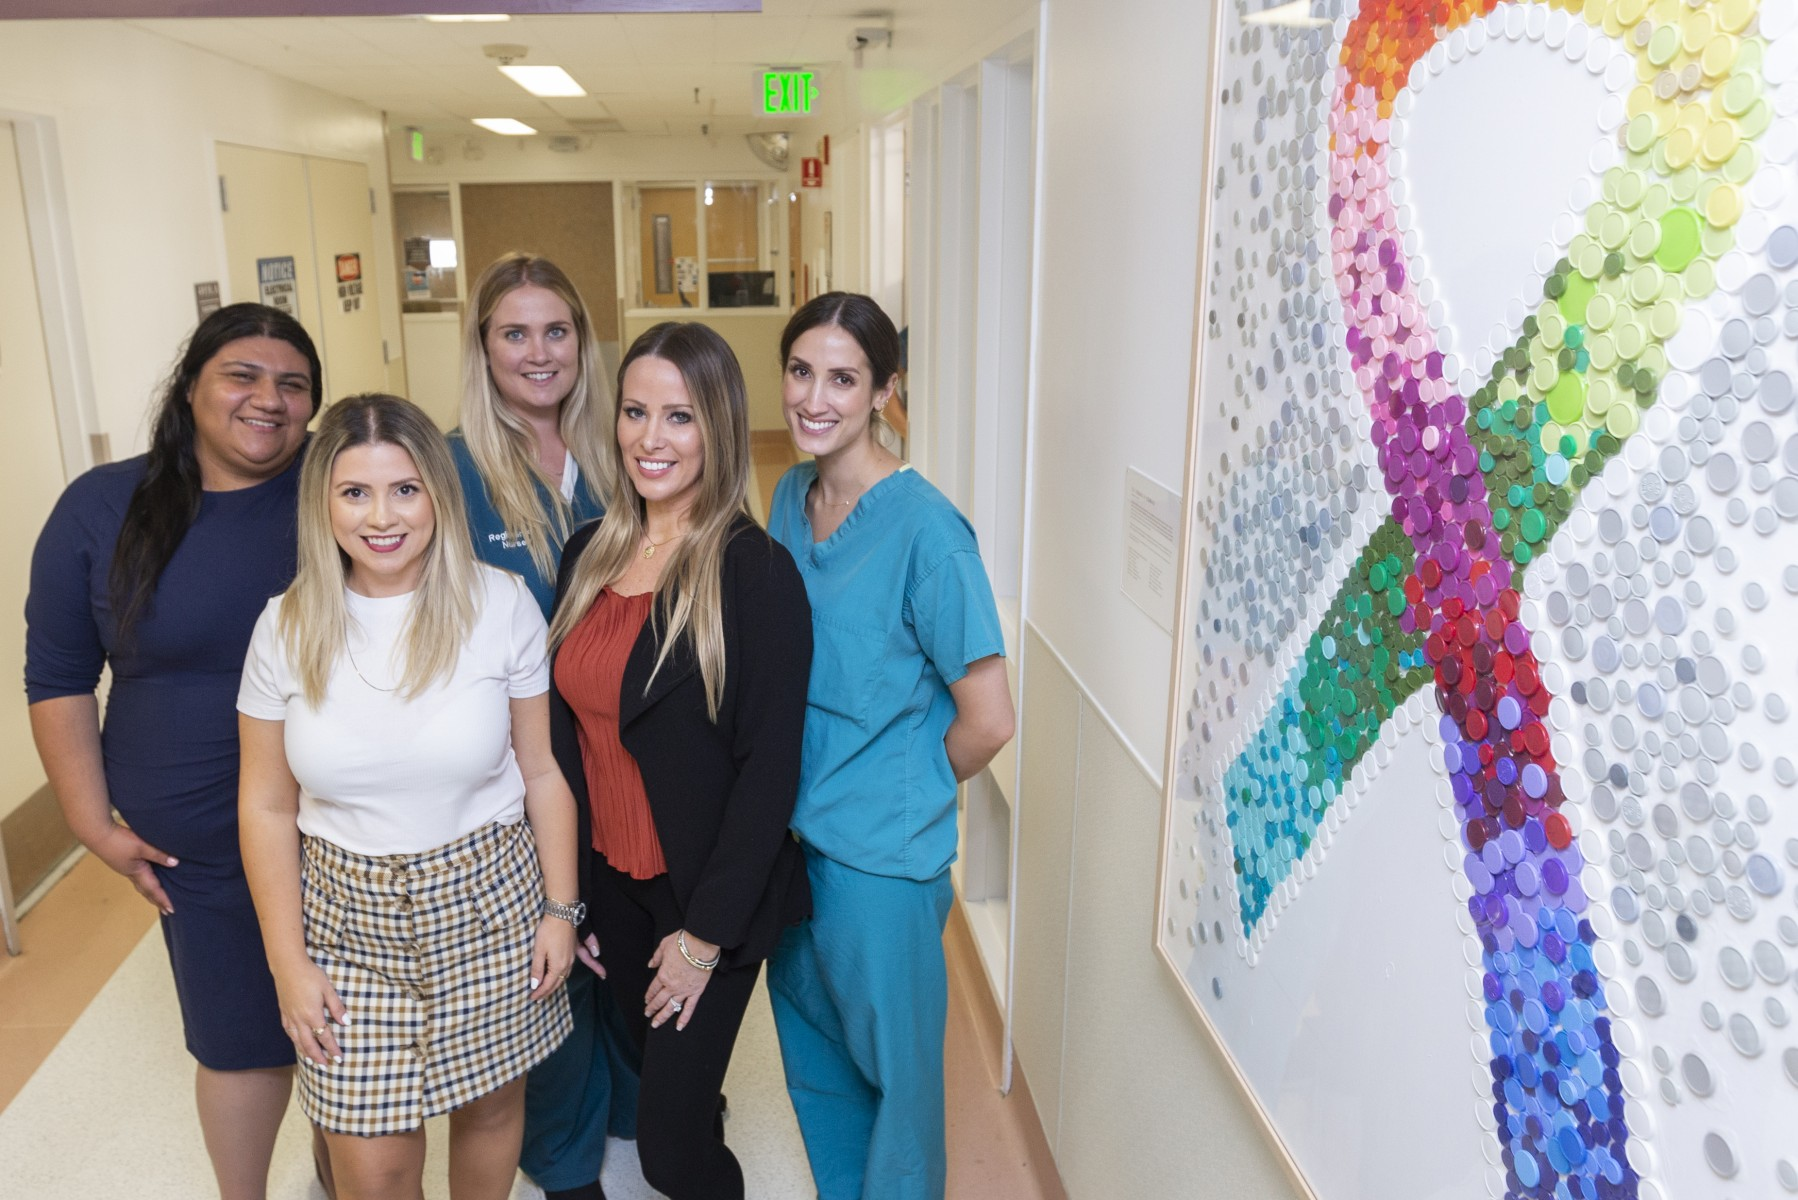 Oncology nurses Claudia Maldonado-Howell, MSN, FNP, CMSRN, Silva Amirkhanian, BSN, RN, CMSRN, Megan McCarthy, BSN, RN, Sarah Bishop, RN, OCN, and Sarah Schlachtman, RN, MSN, and their artwork. Photo by Cedars-Sinai.